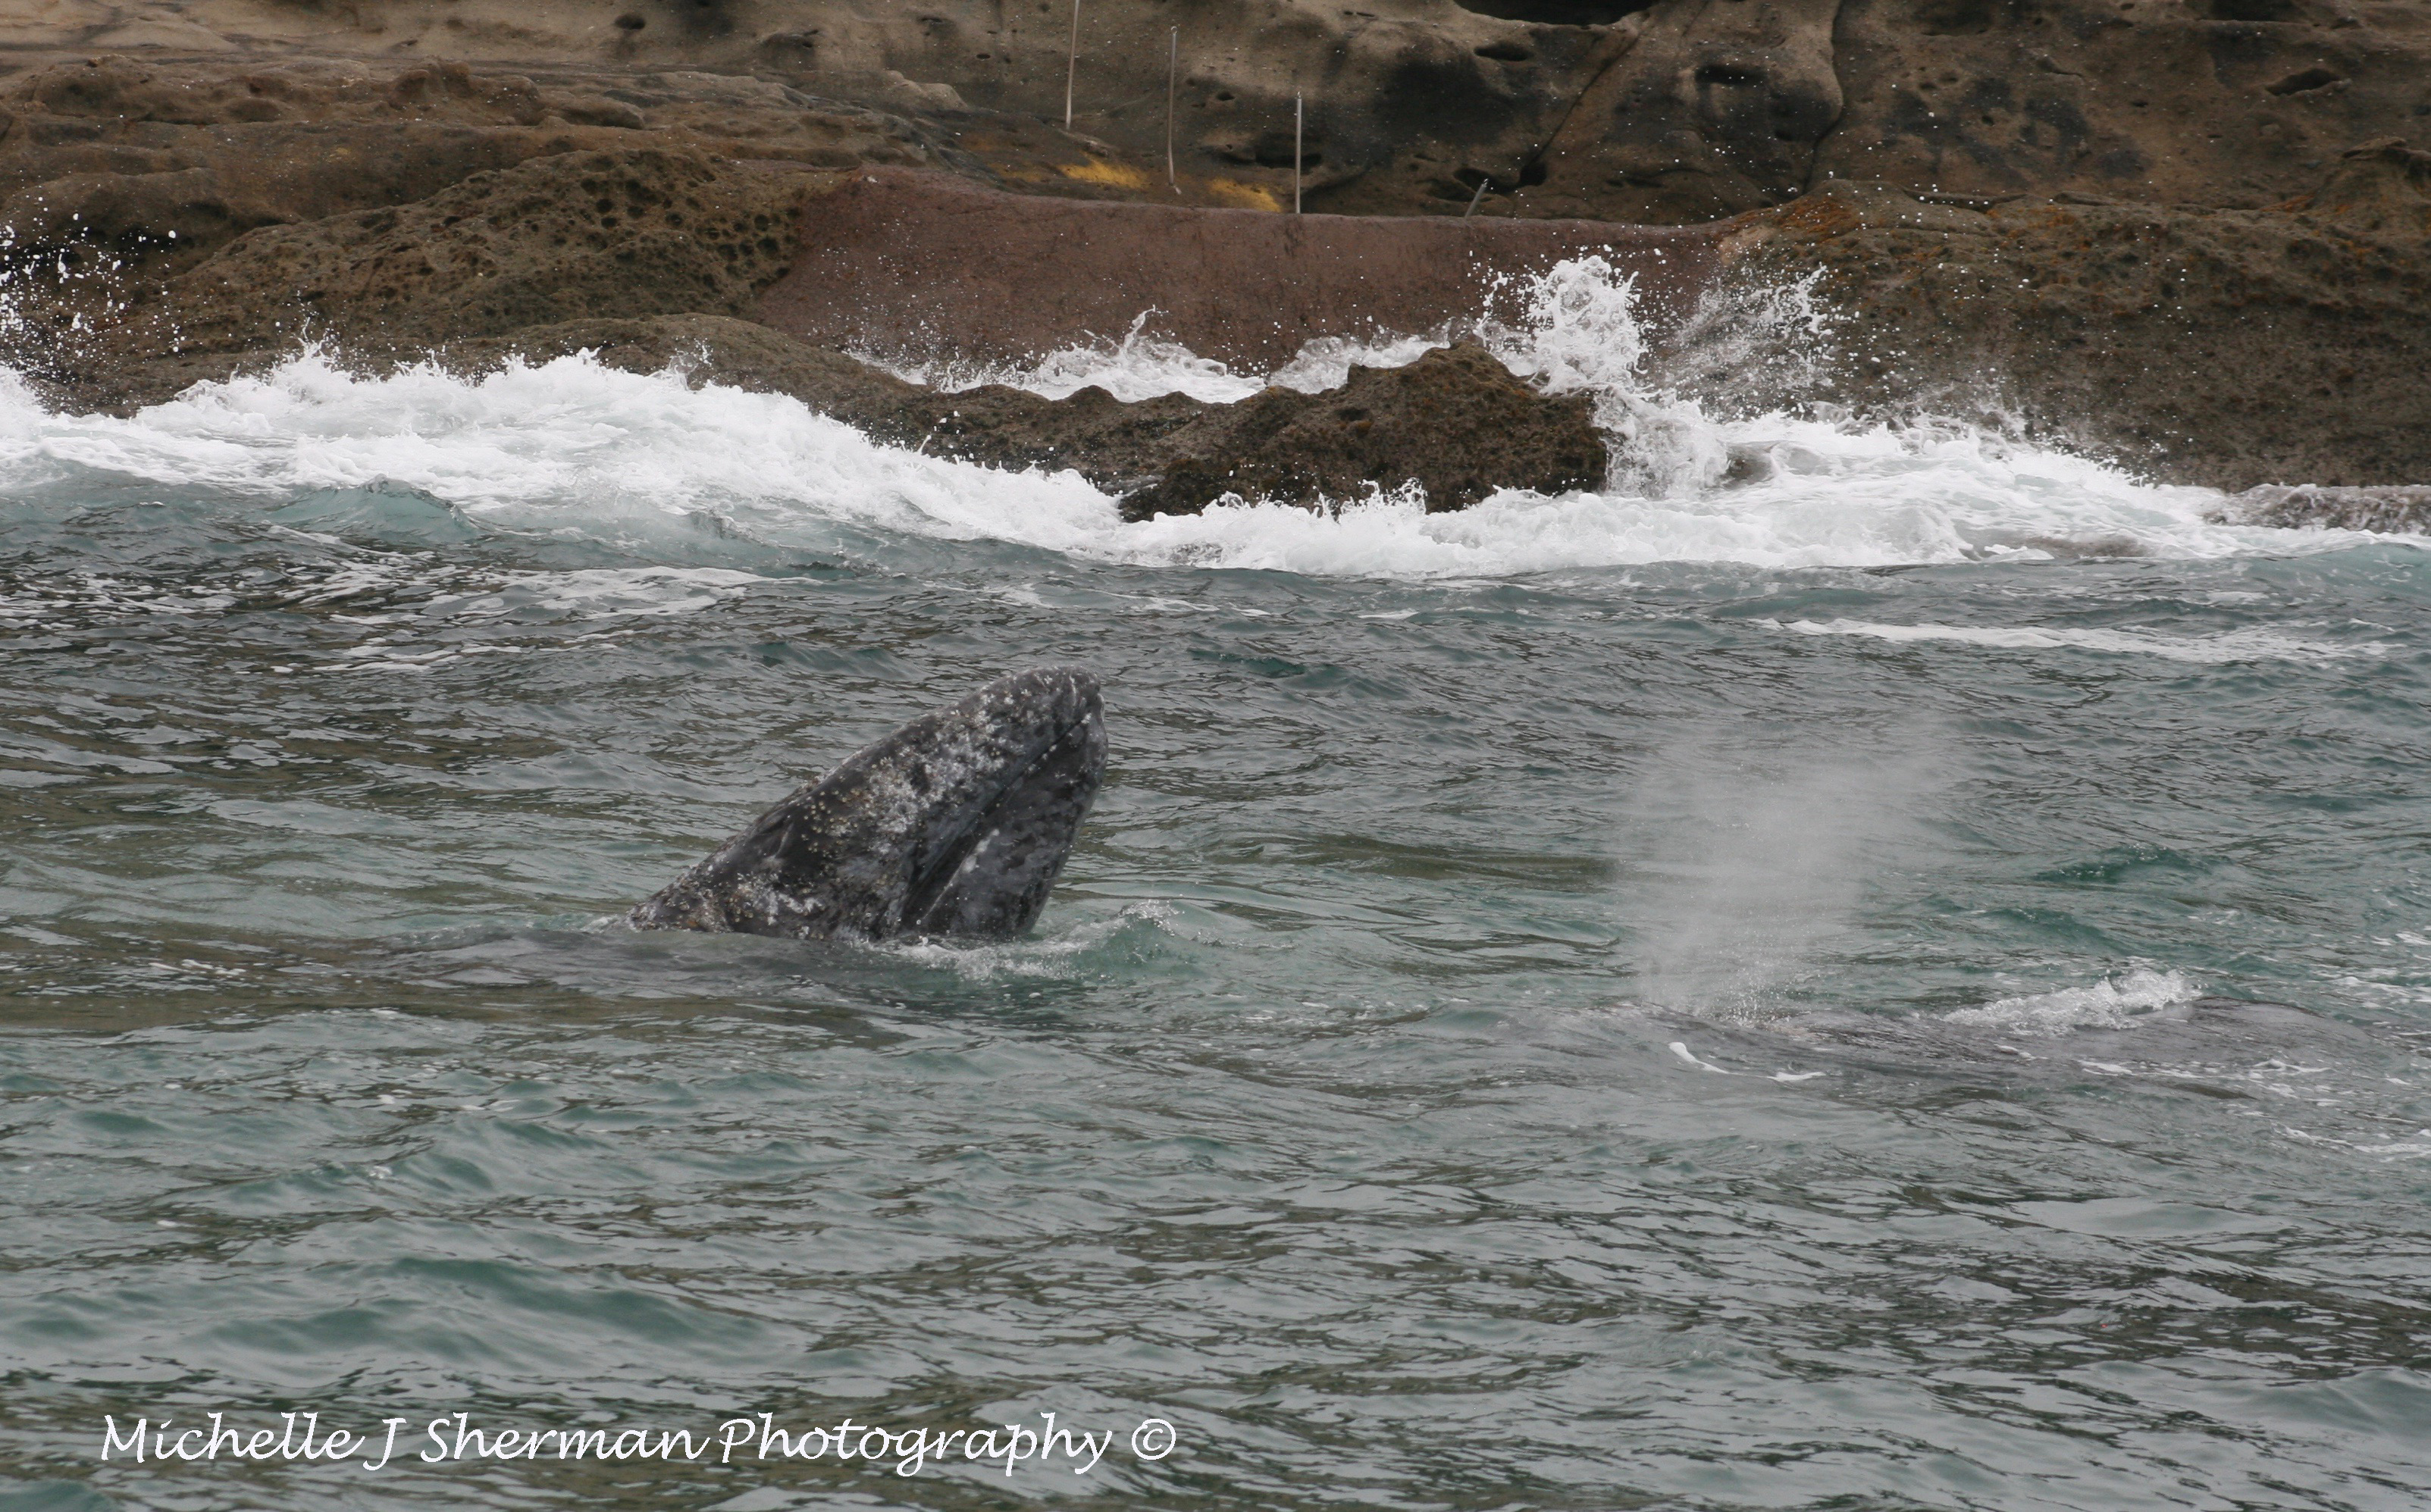 Sealions, Seals & Whales Oh My- Mich's Monday Mantra